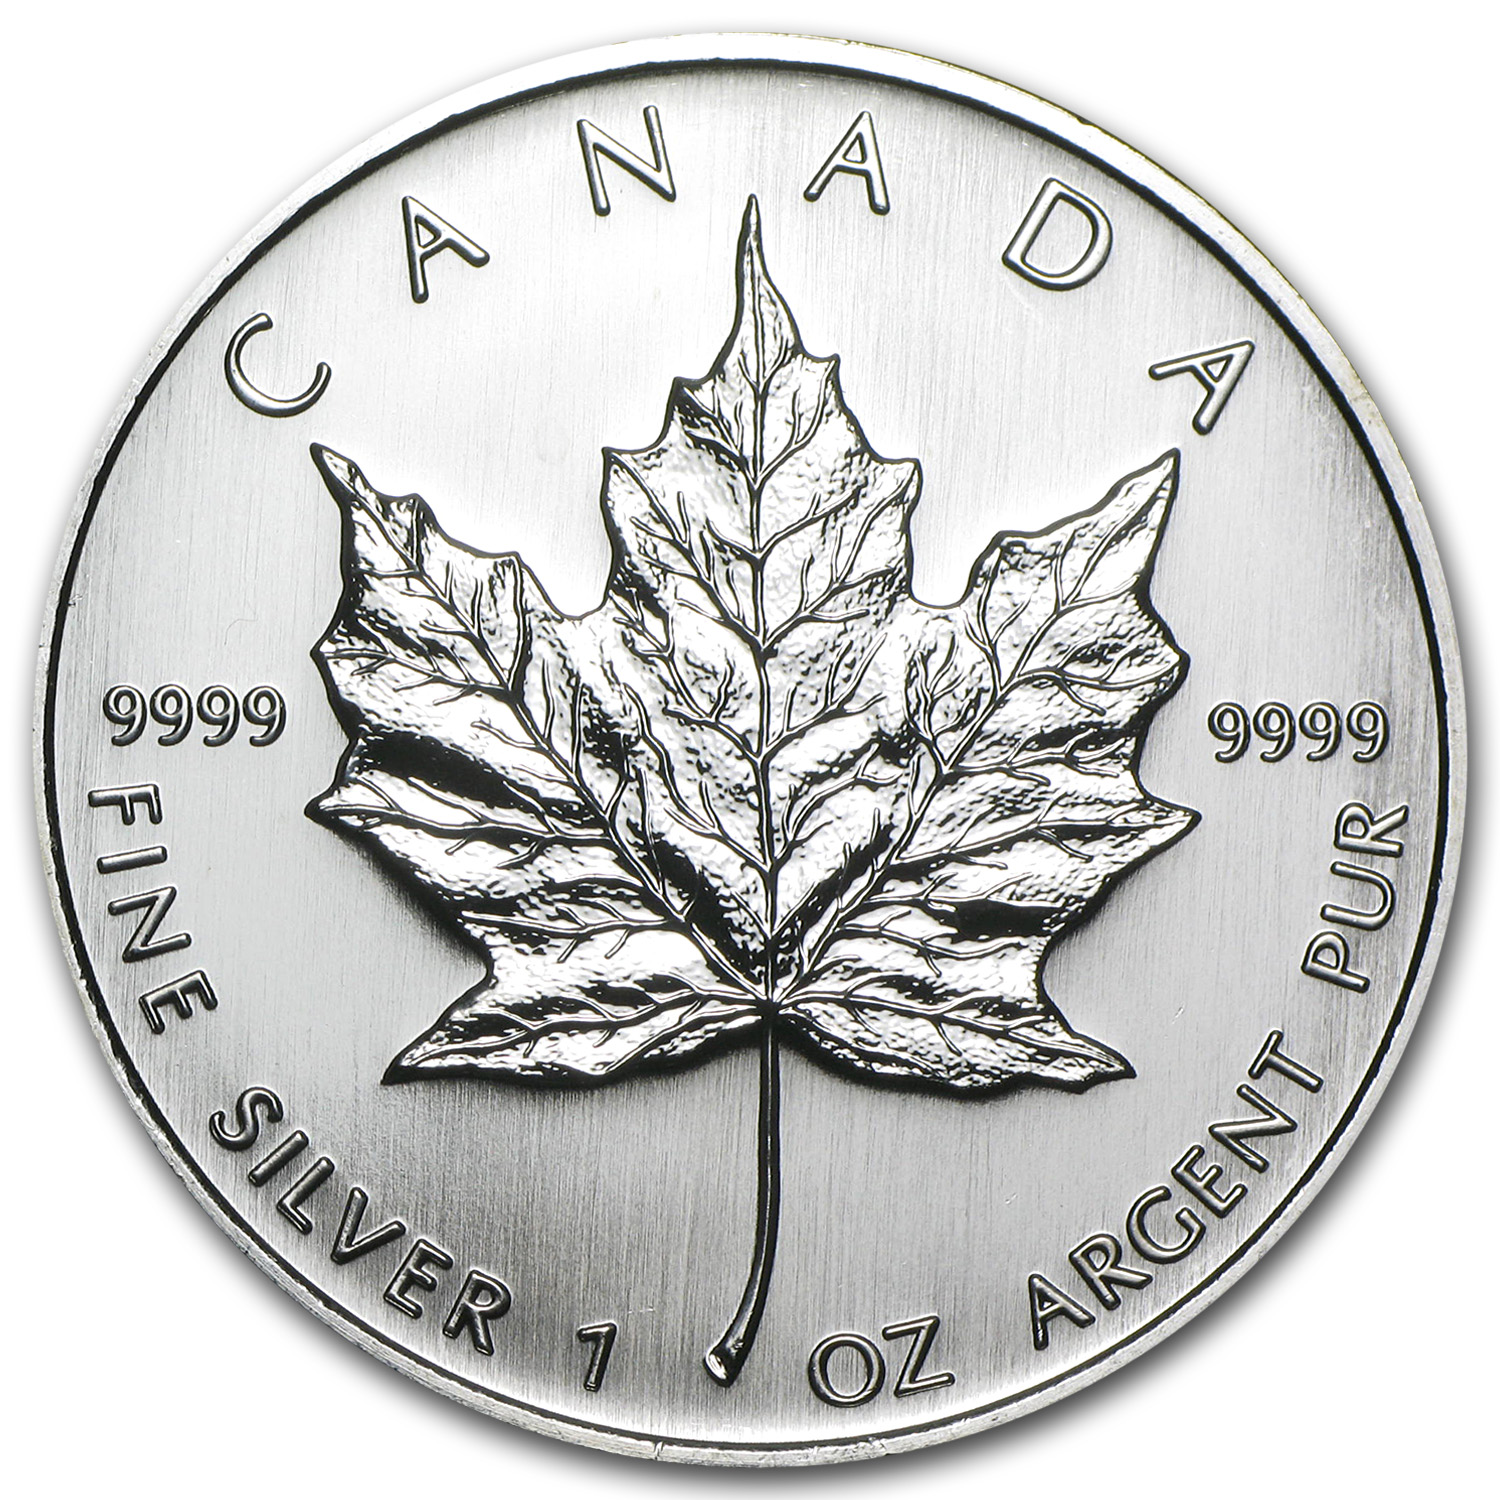 2007 Canada 1 oz Silver Maple Leaf BU